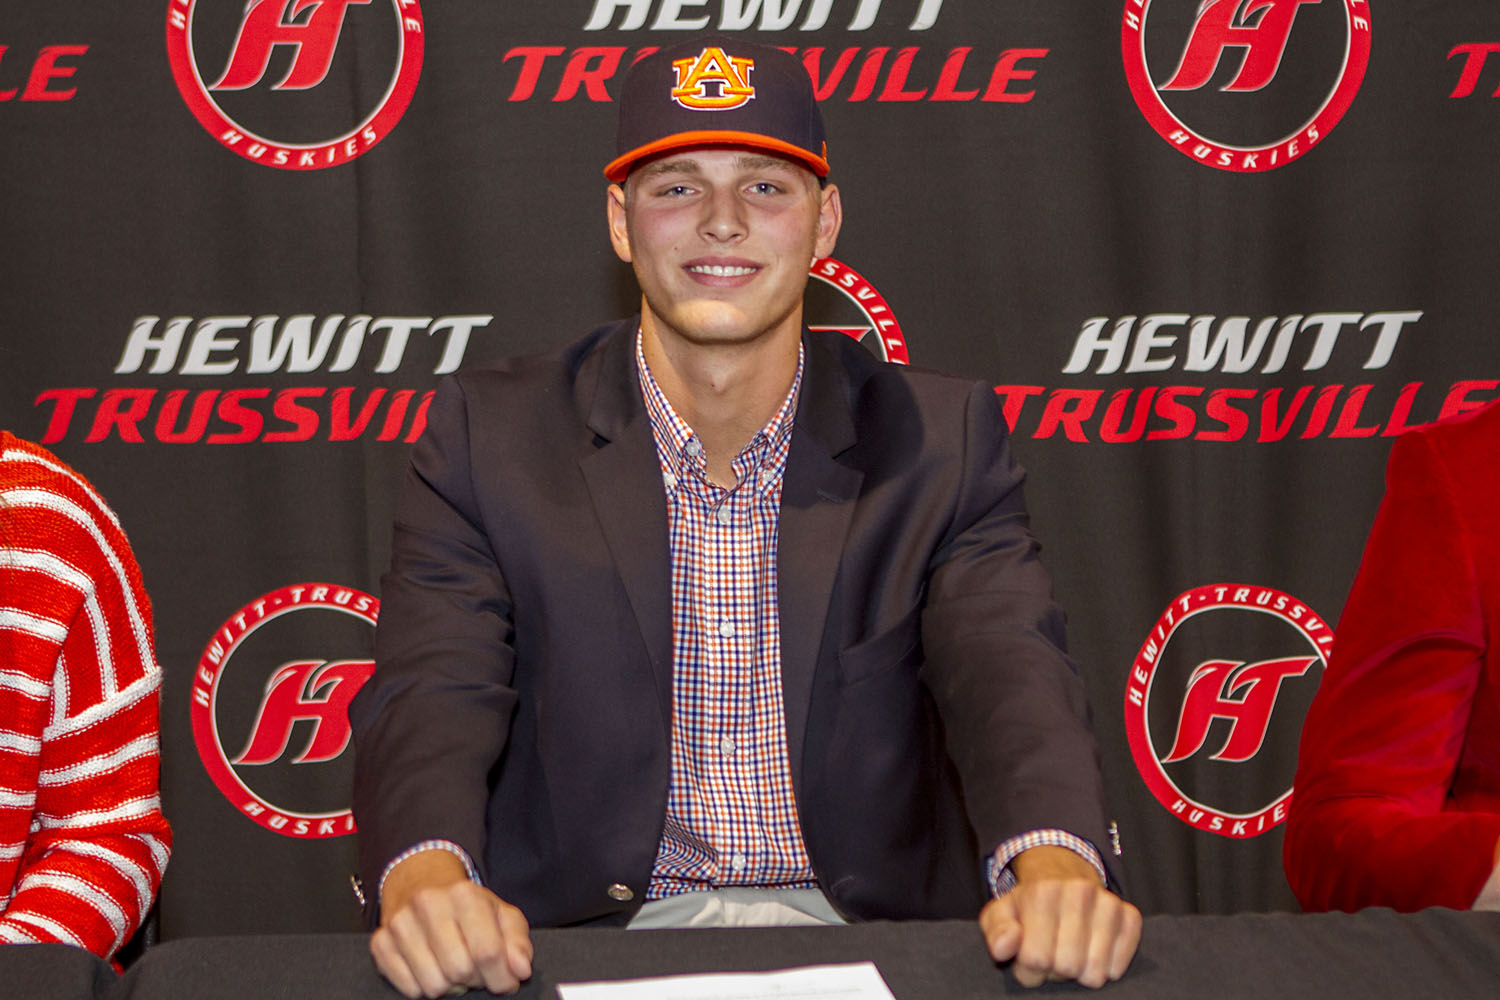 Former Hewitt-Trussville pitcher named to college baseball's Stopper of the Year watch list